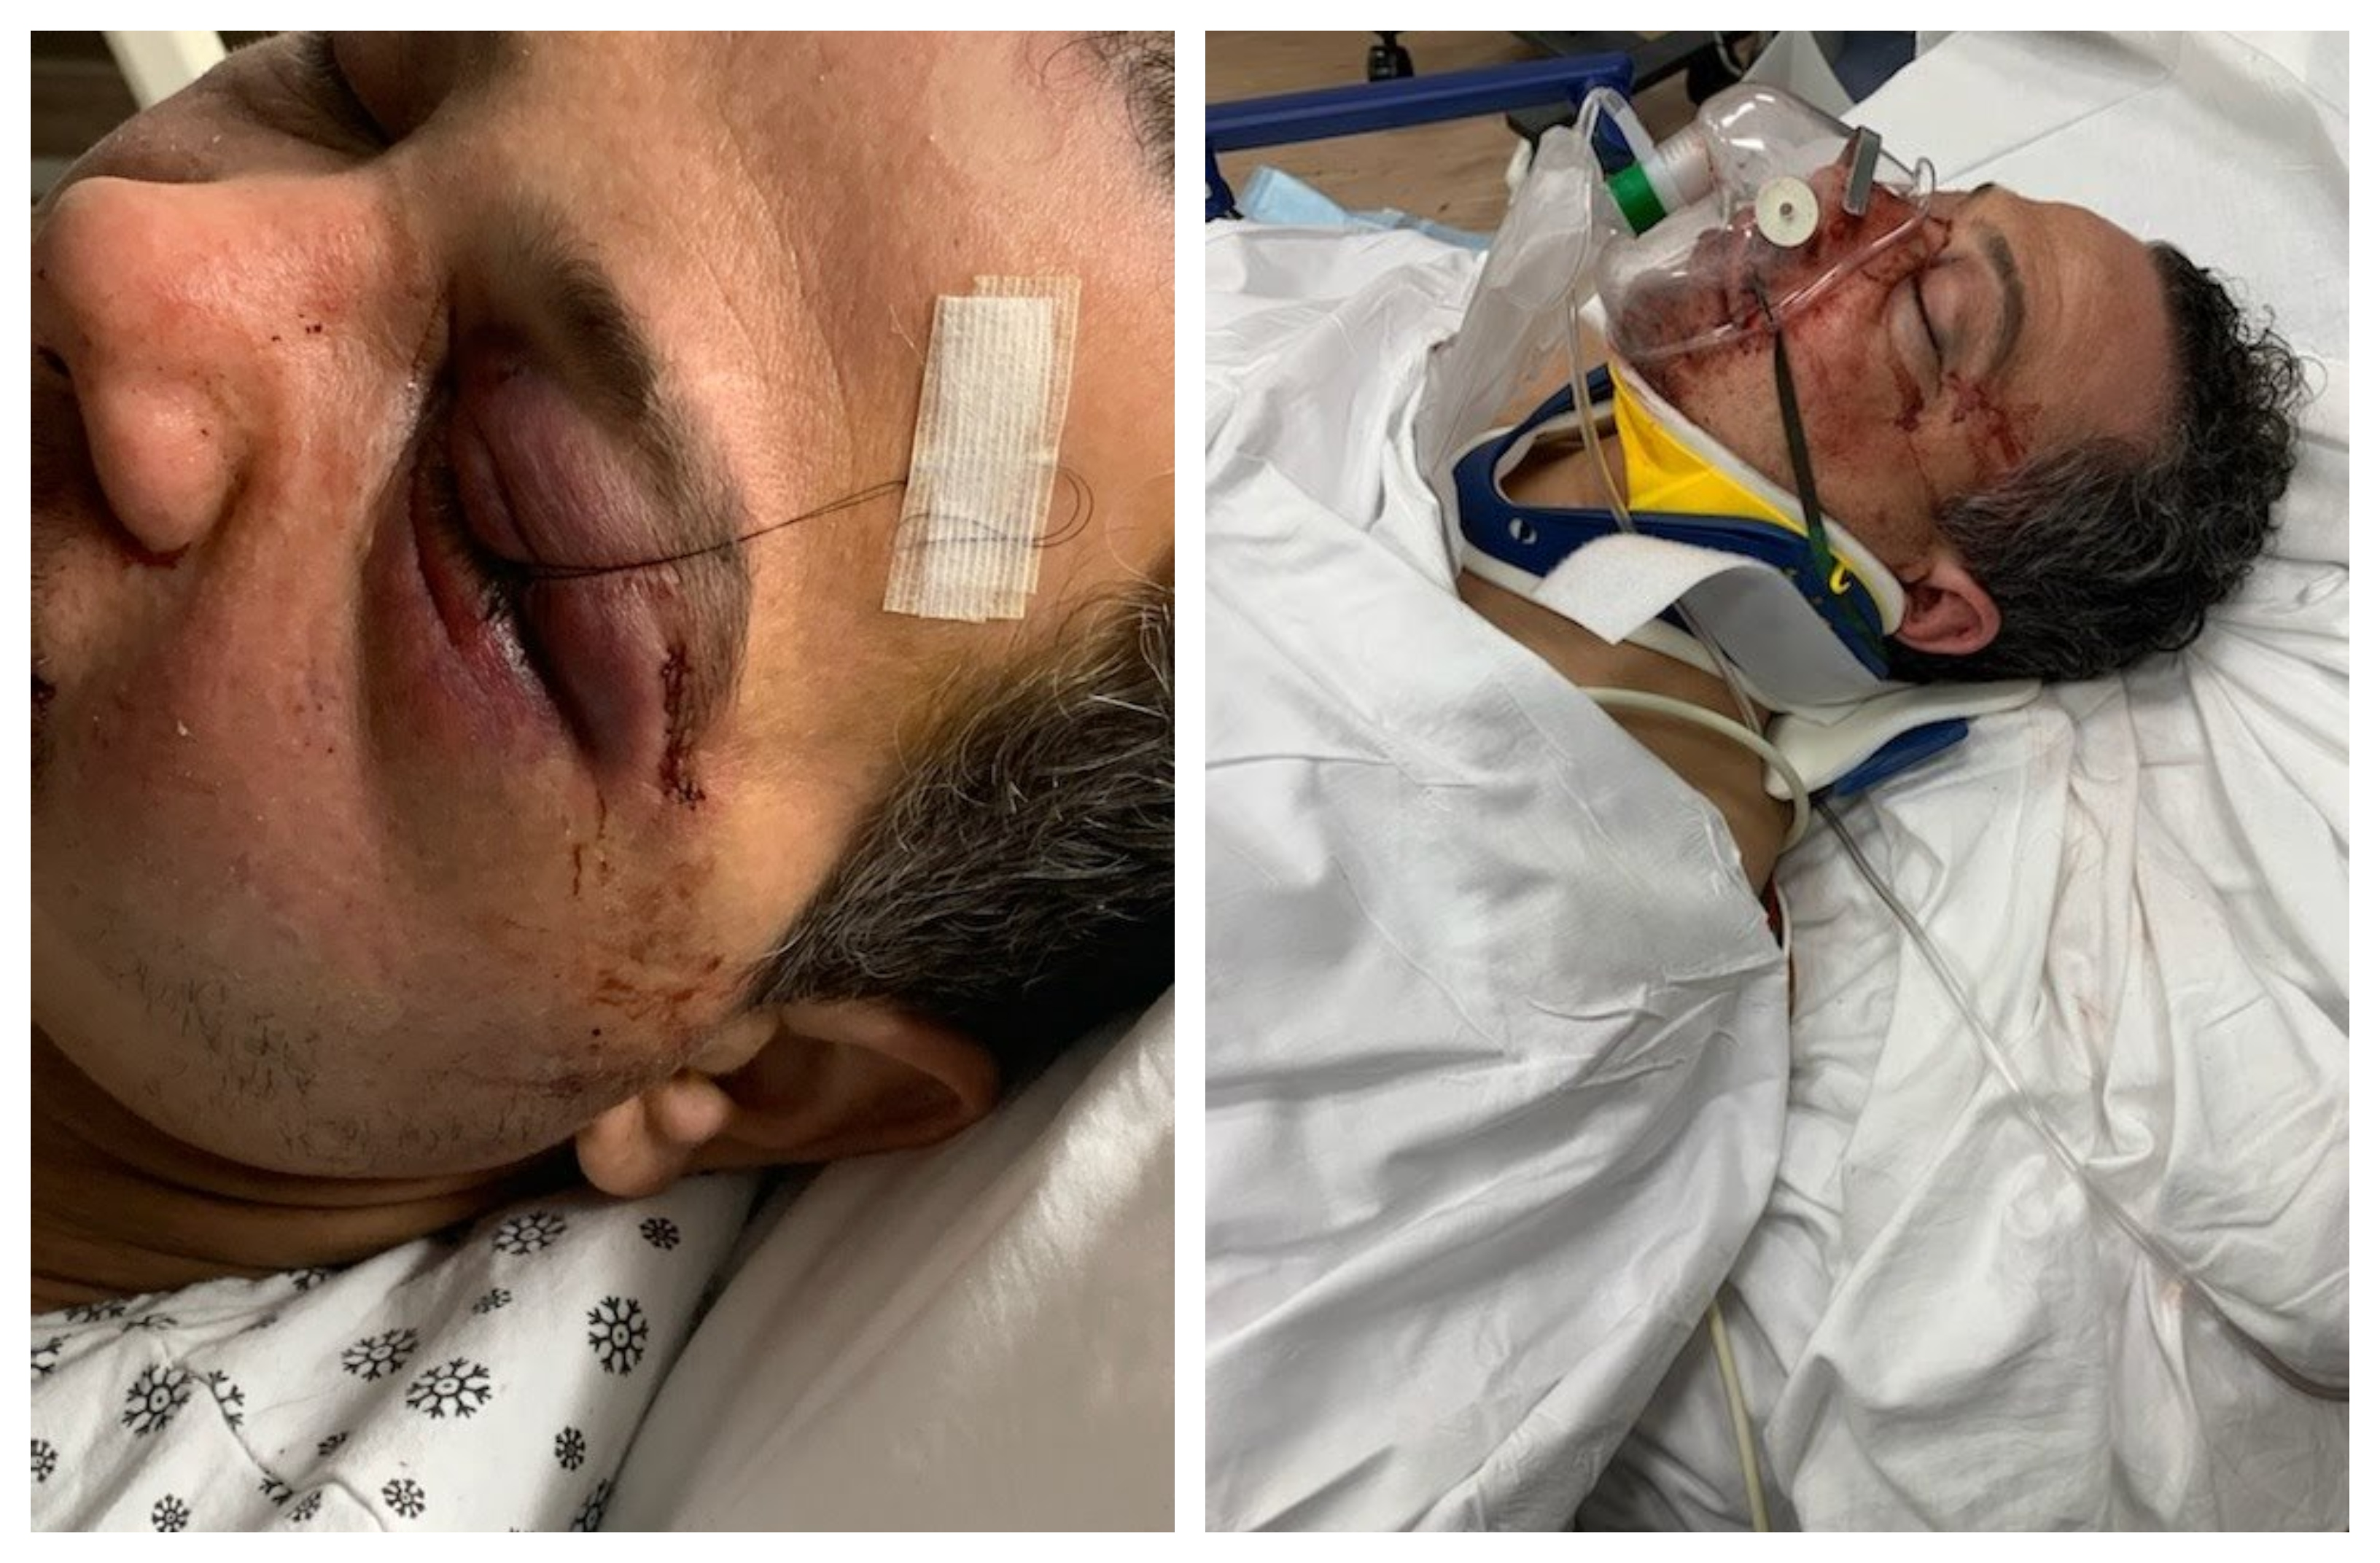 The father-of-two seen in a hospital photo with injuries to his face and neck.